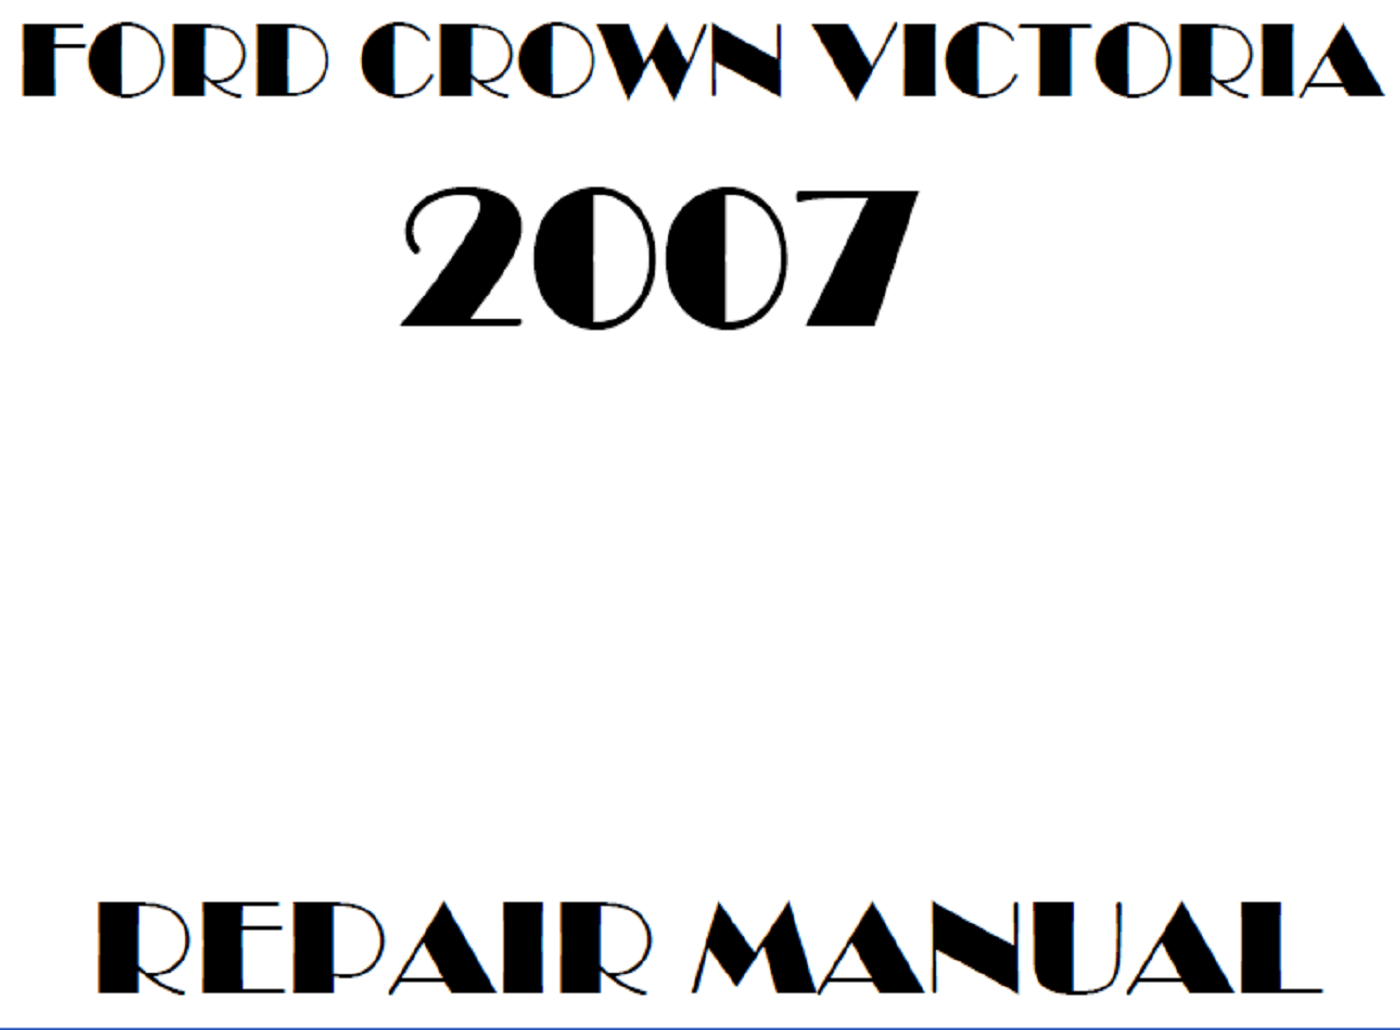 2007 Ford Crown Victoria repair manual